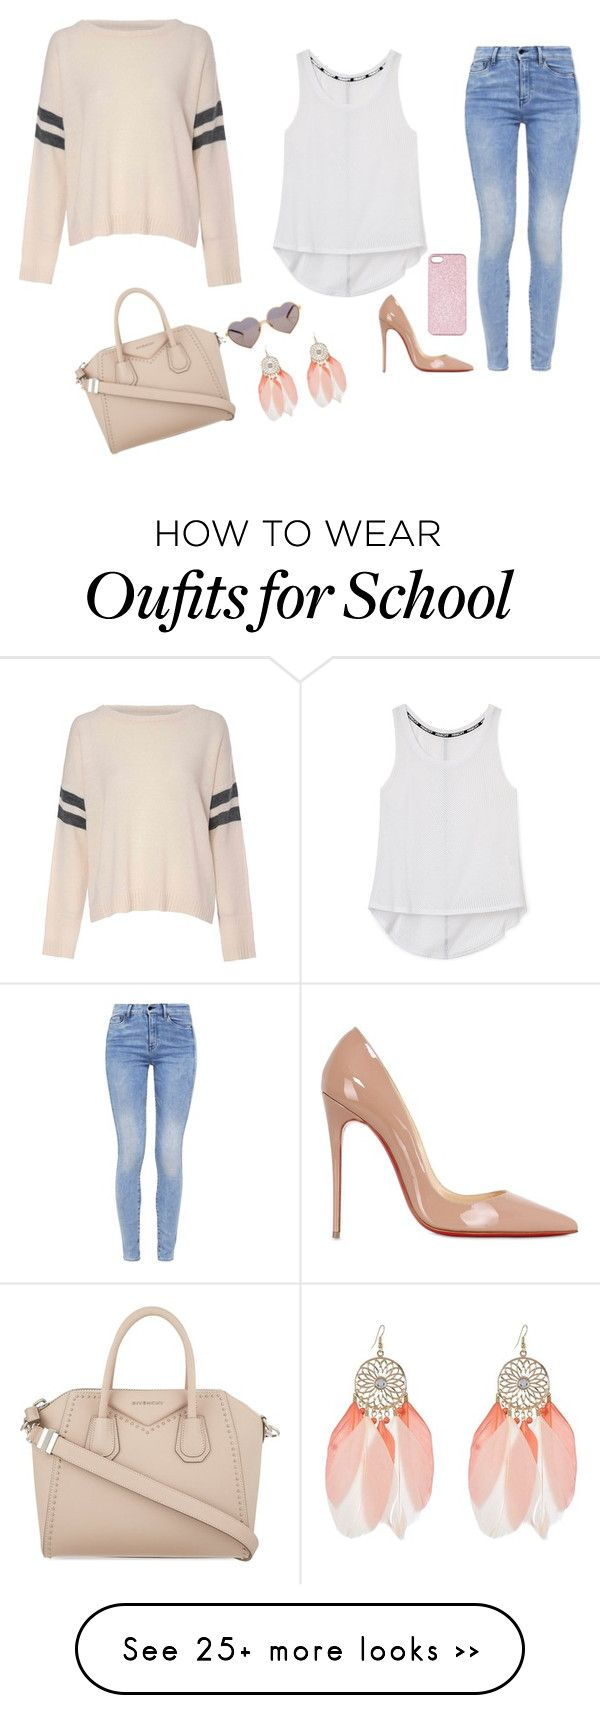 """School's out"" by seals23 on Polyvore featuring Glamorous, Rebecca Minkoff, G-Star, Christian Louboutin, Givenchy, Wildfox and Topshop"